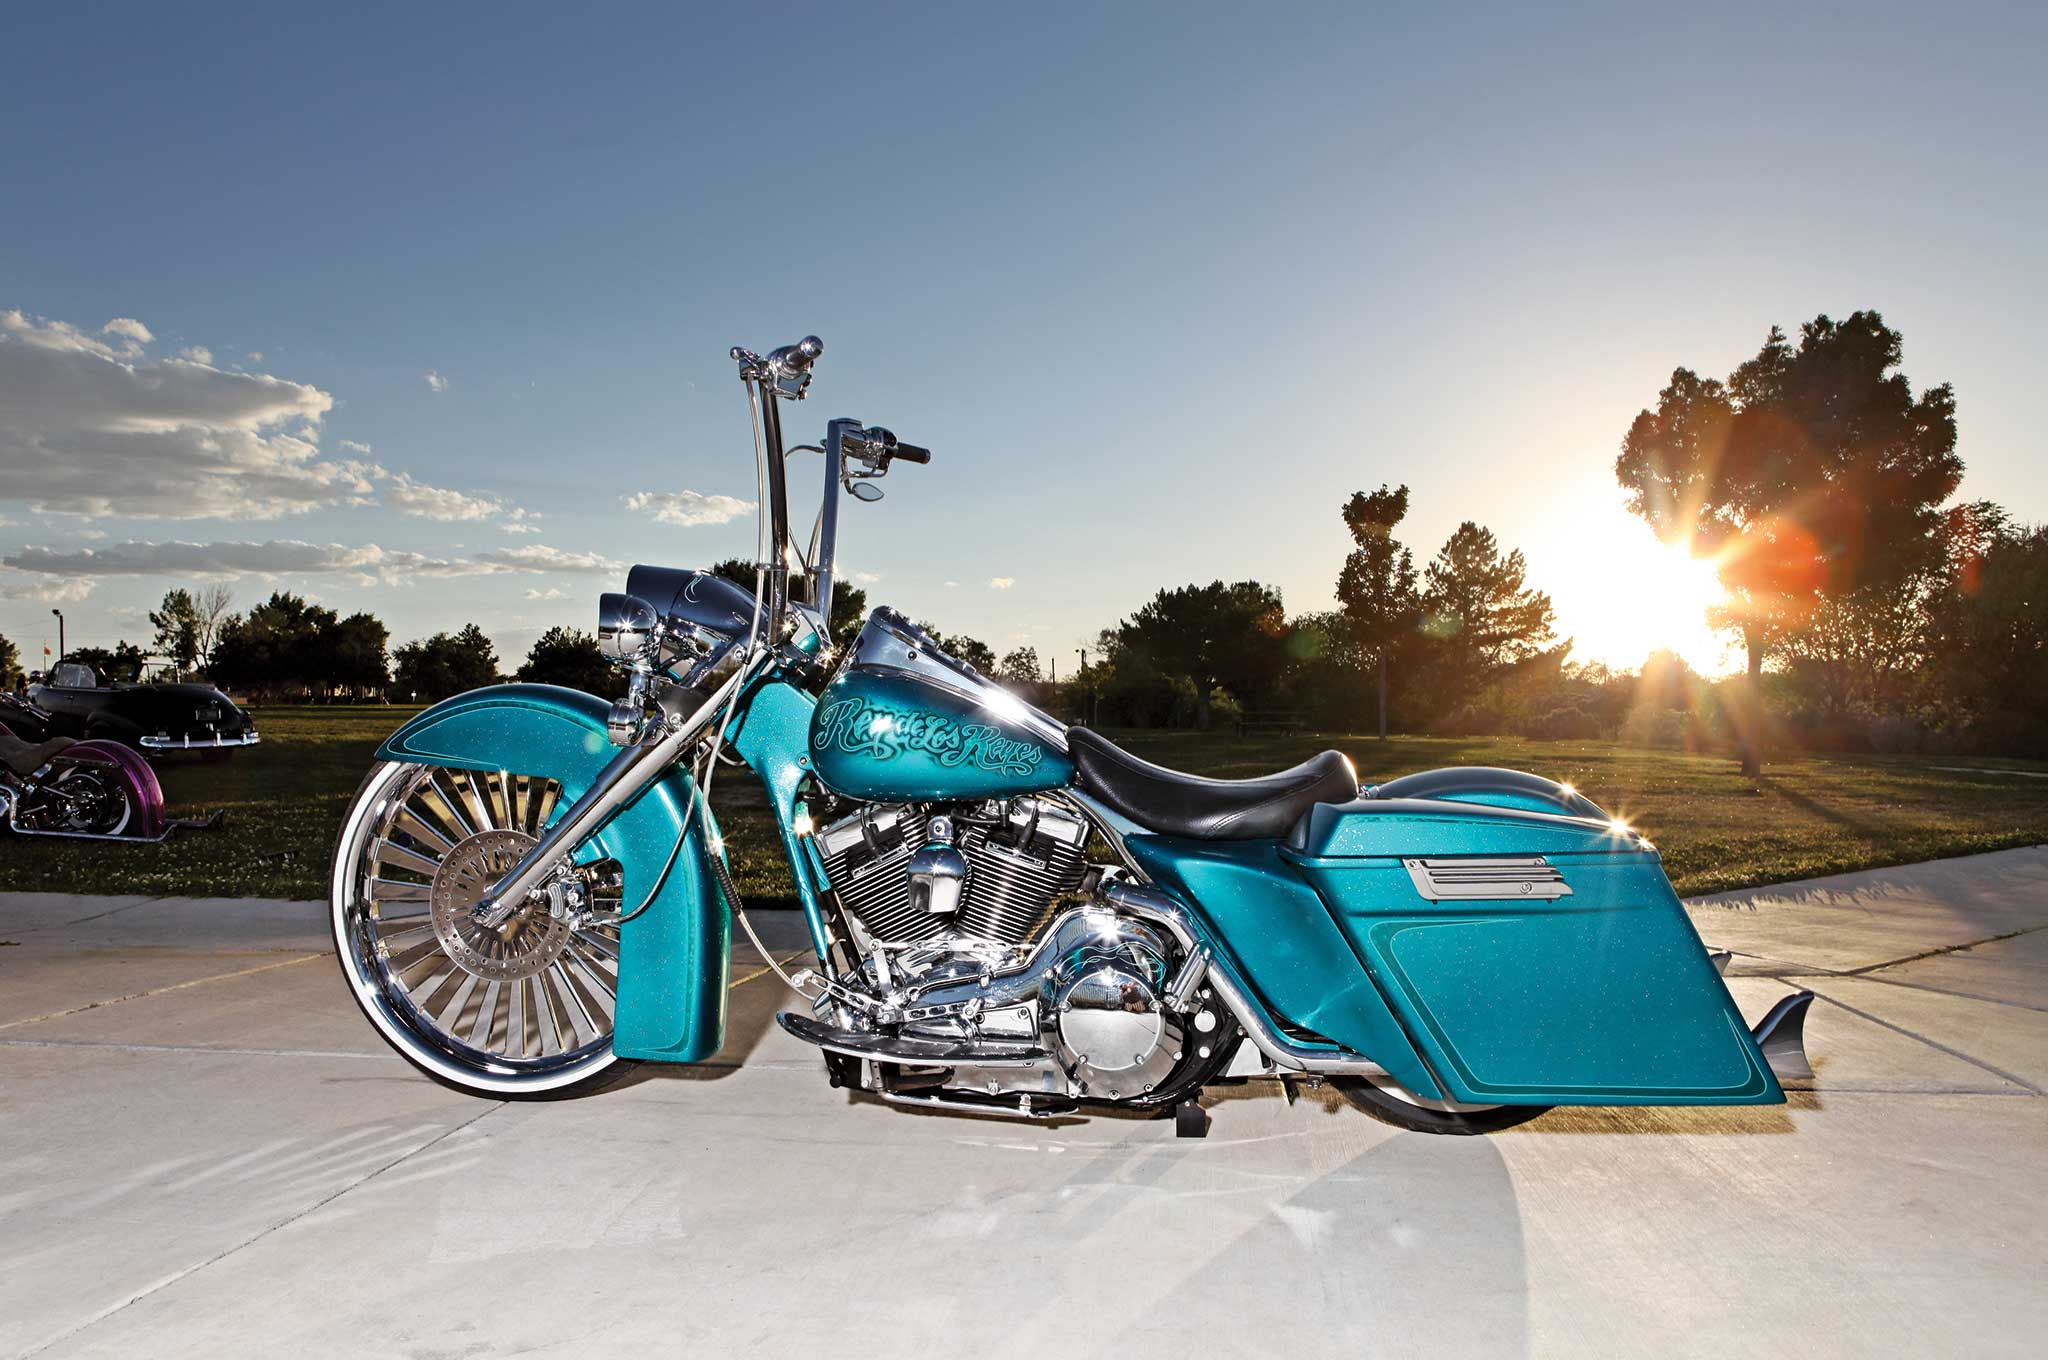 2004 harley davidson road king king of the road lowrider. Black Bedroom Furniture Sets. Home Design Ideas